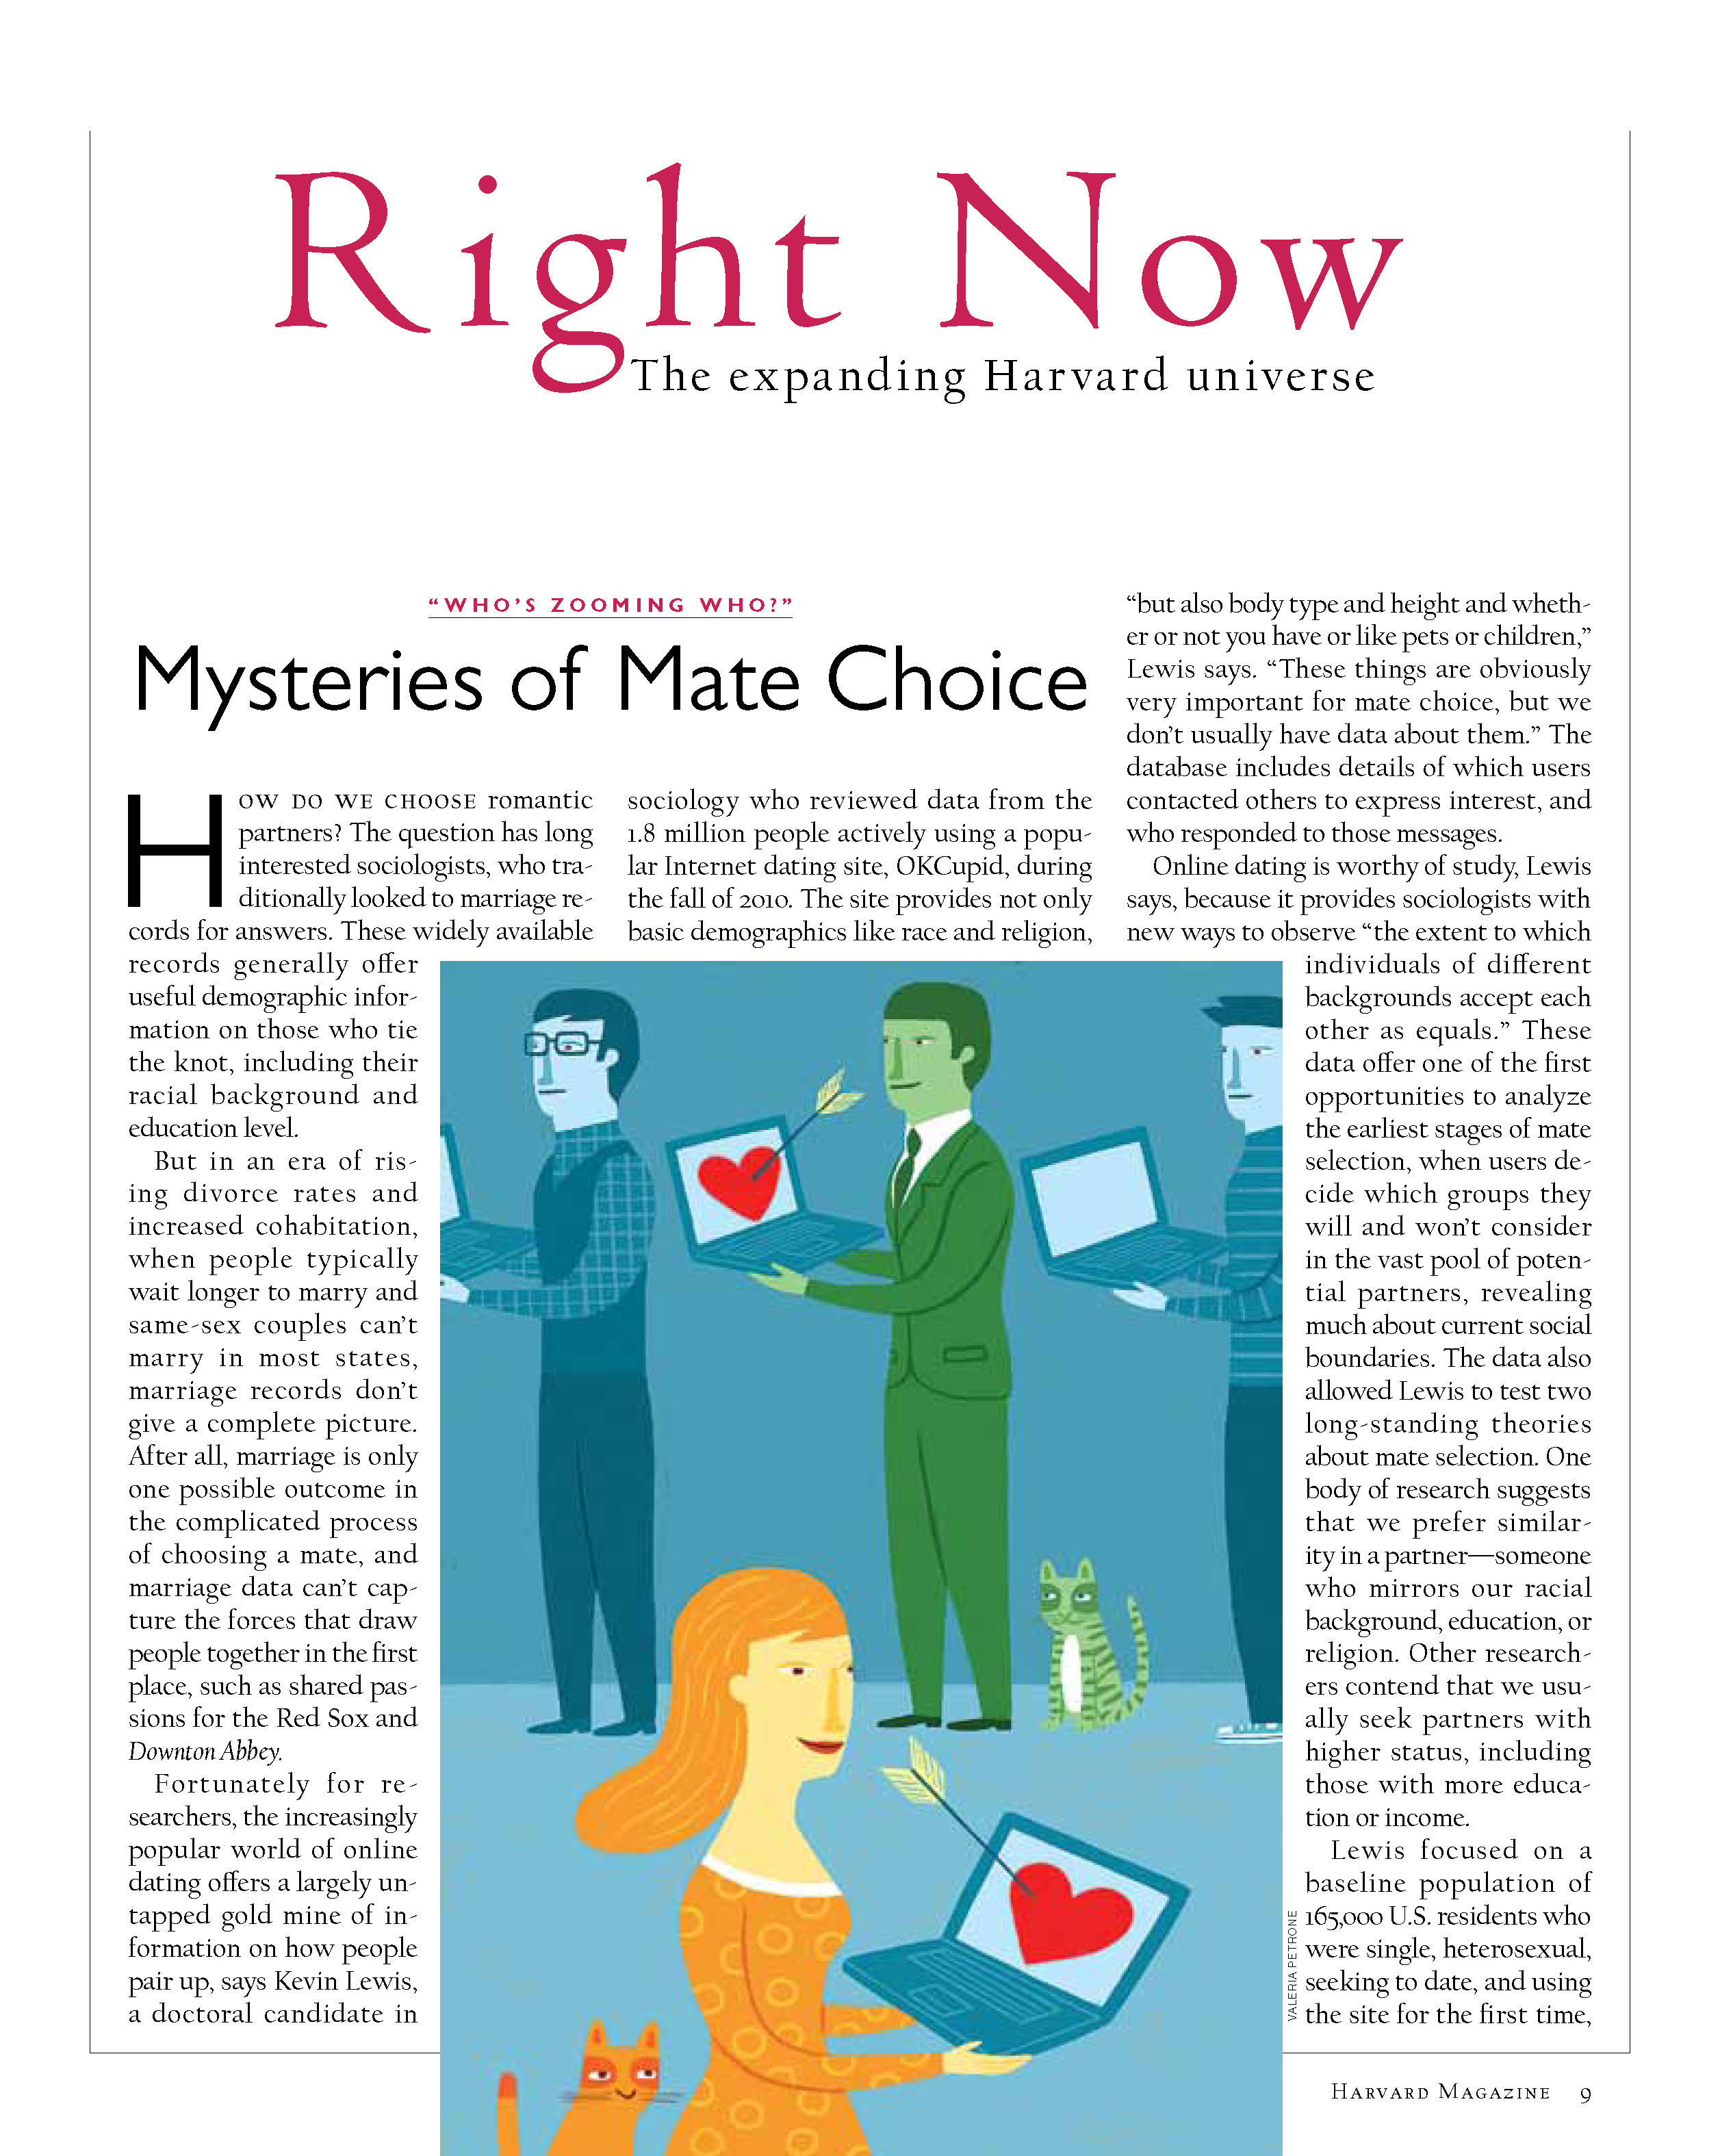 Mysteries of Mate Choice